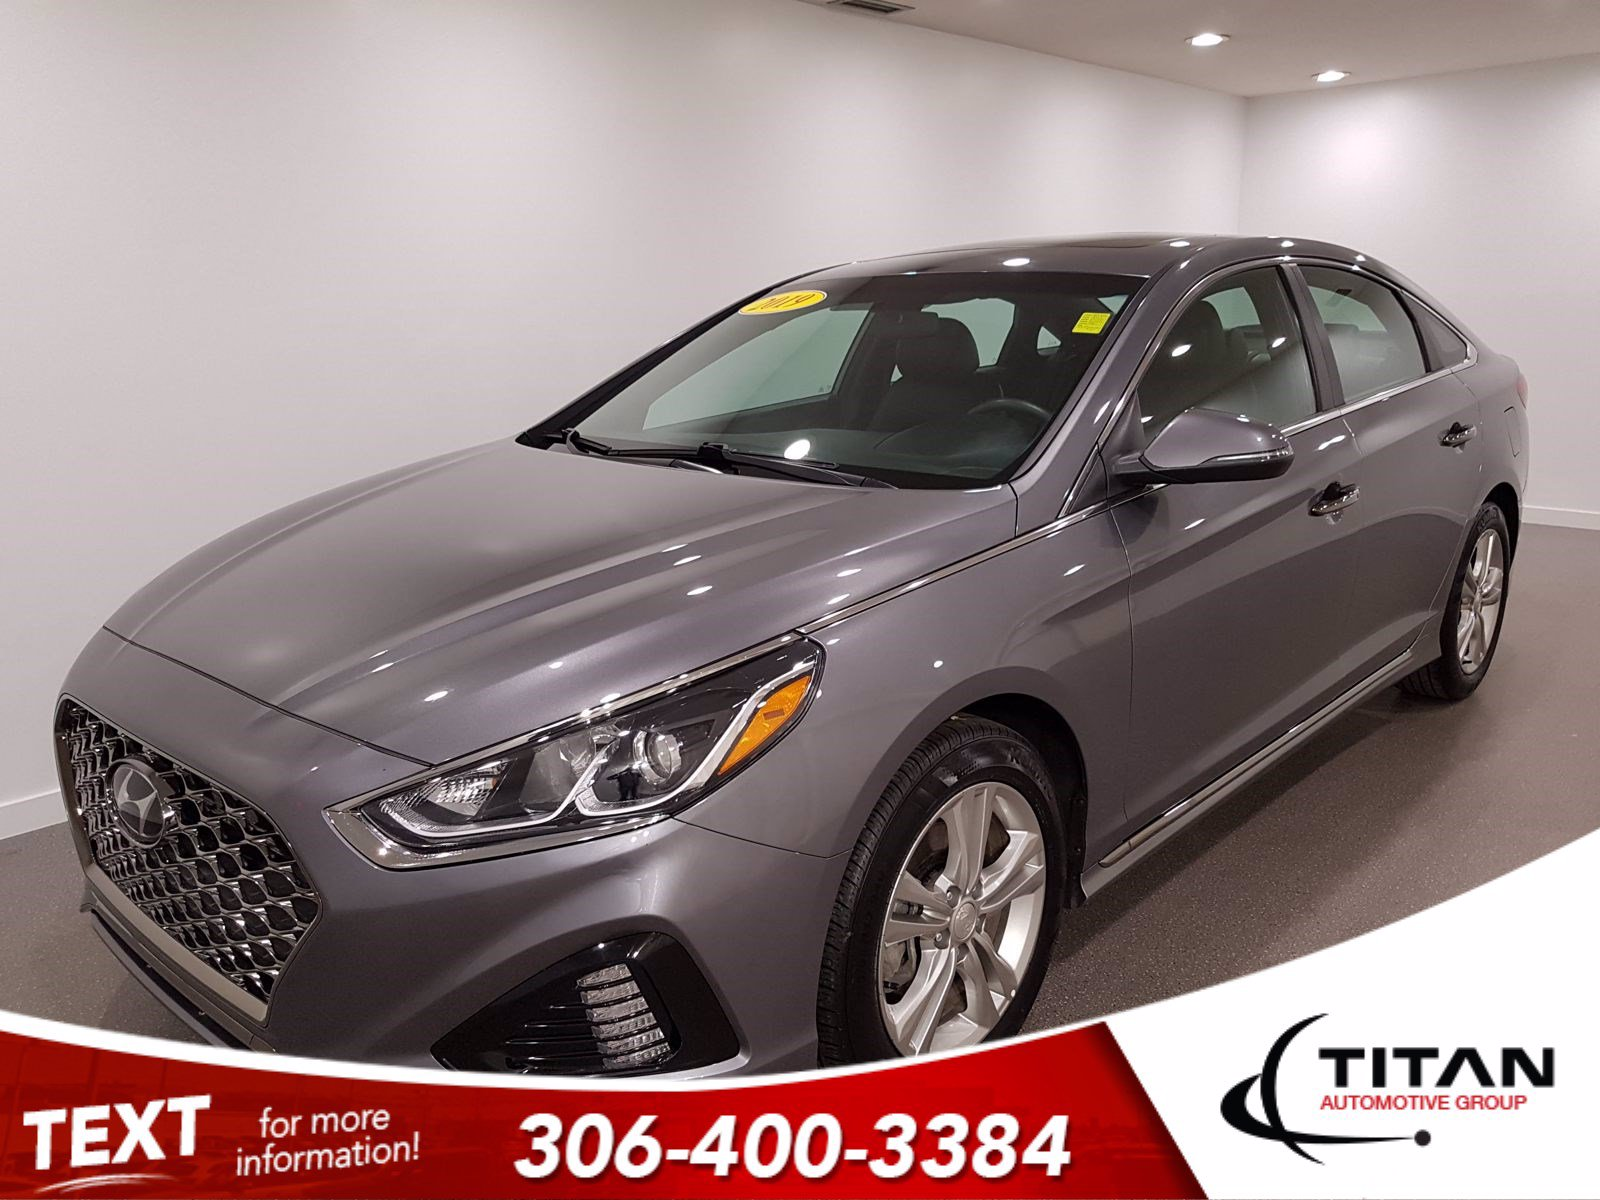 Pre-Owned 2019 Hyundai Sonata Sport | Auto | Android Auto/Apple Carplay | CAM | Rims | Htd Seats